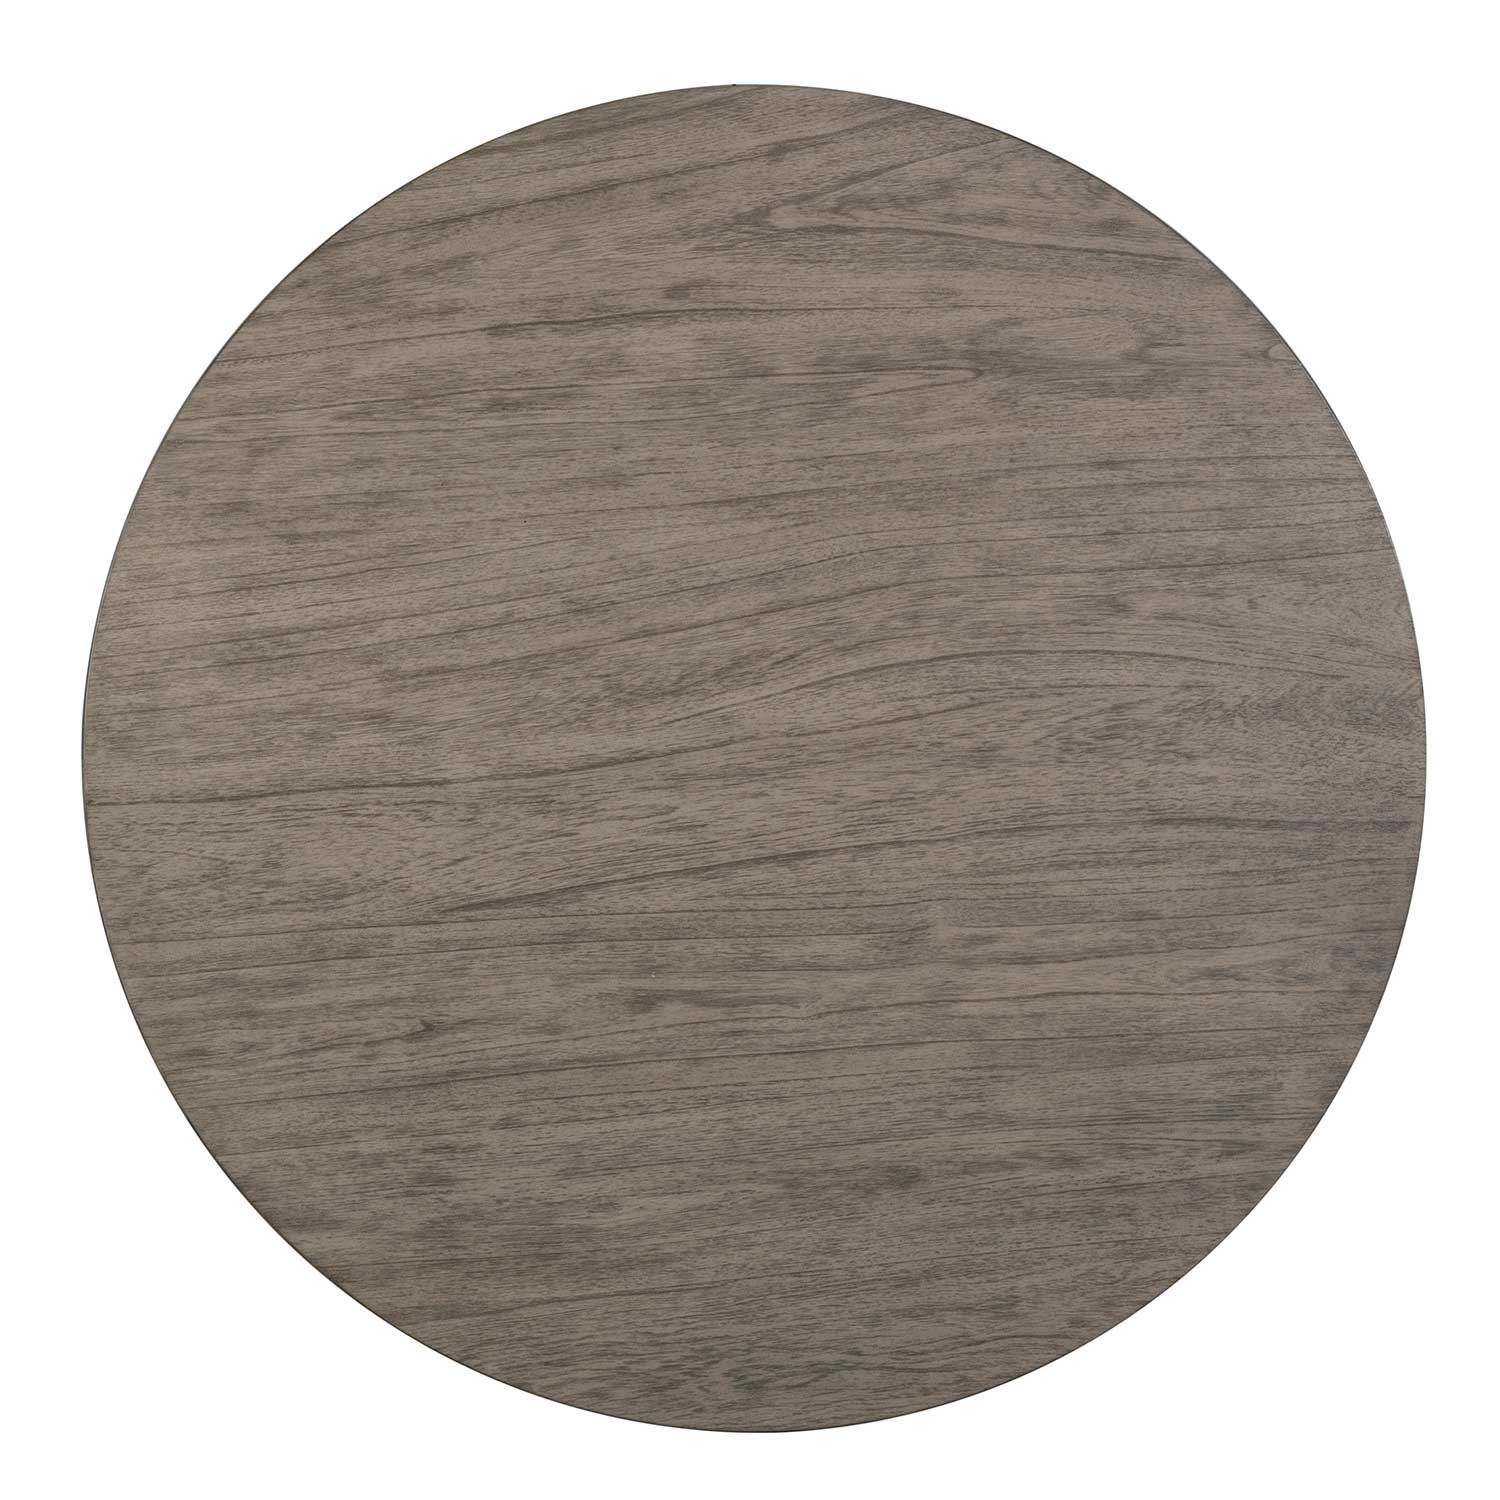 Hillsdale Alden Bay Modern Round Wood Dining Table - Weathered Gray